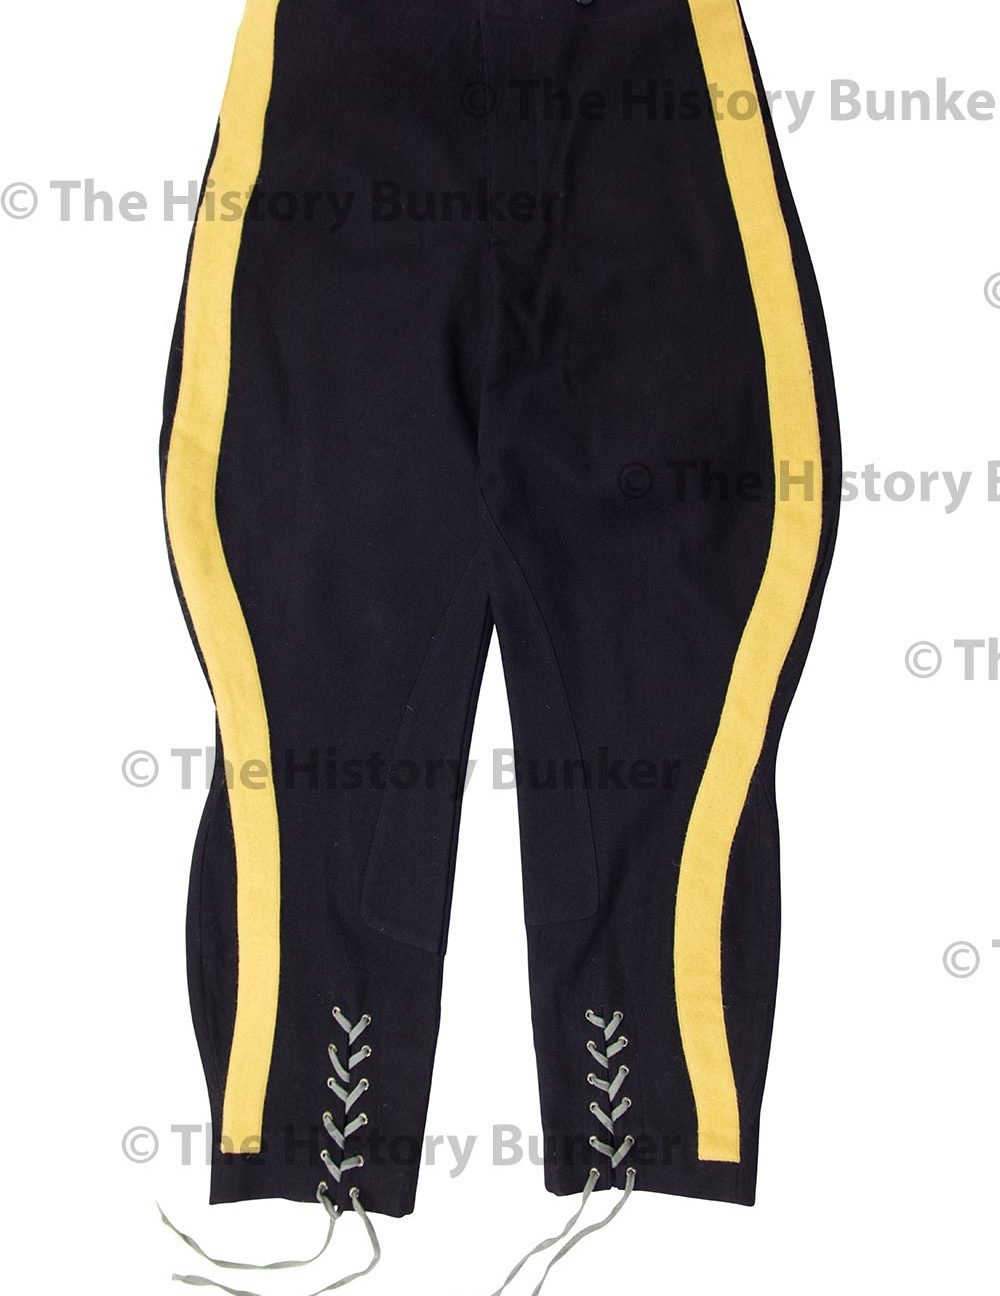 1904 Canadian North West Frontier Police trooper And officer breeches